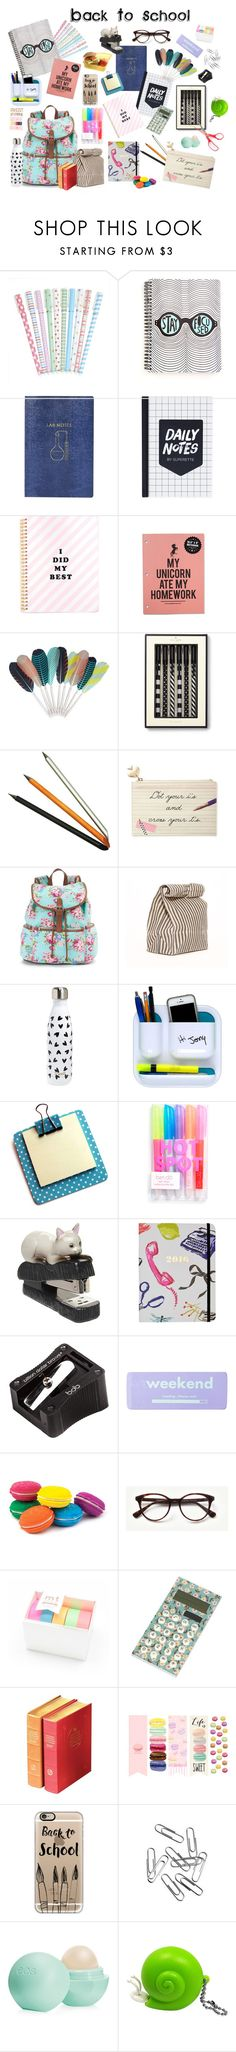 """School Supplies"" by onewithbirds ❤ liked on Polyvore featuring interior, interiors, interior design, home, home decor, interior decorating, Topshop, HAY, Kate Spade and Jac Zagoory Designs"